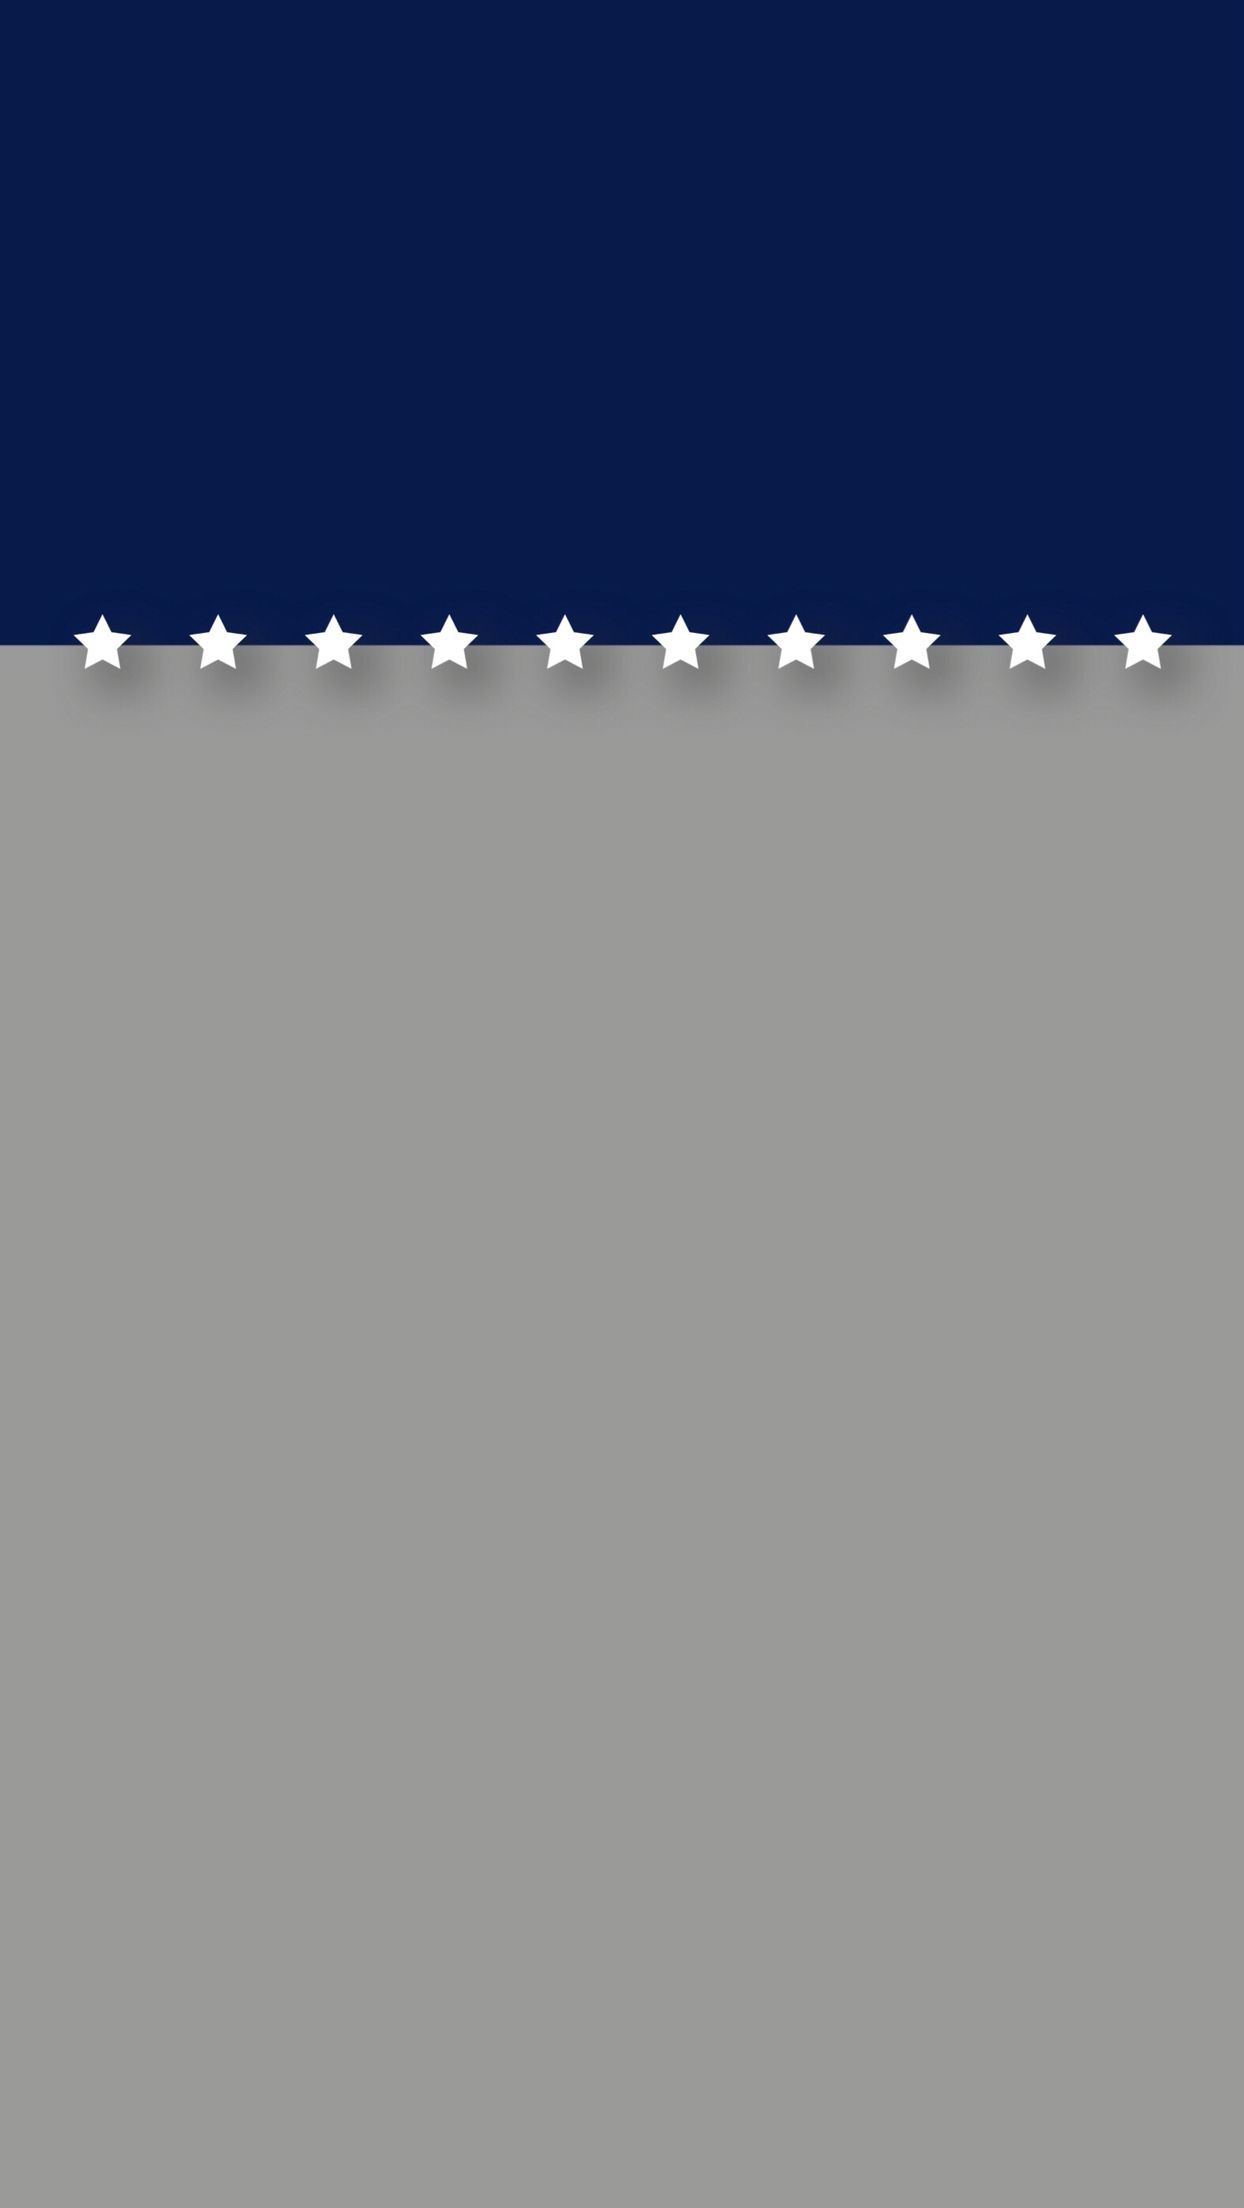 Minimal Blue And Gray With Stars Patriotic Iphone 6 - Minimal Lock Screen Iphone , HD Wallpaper & Backgrounds